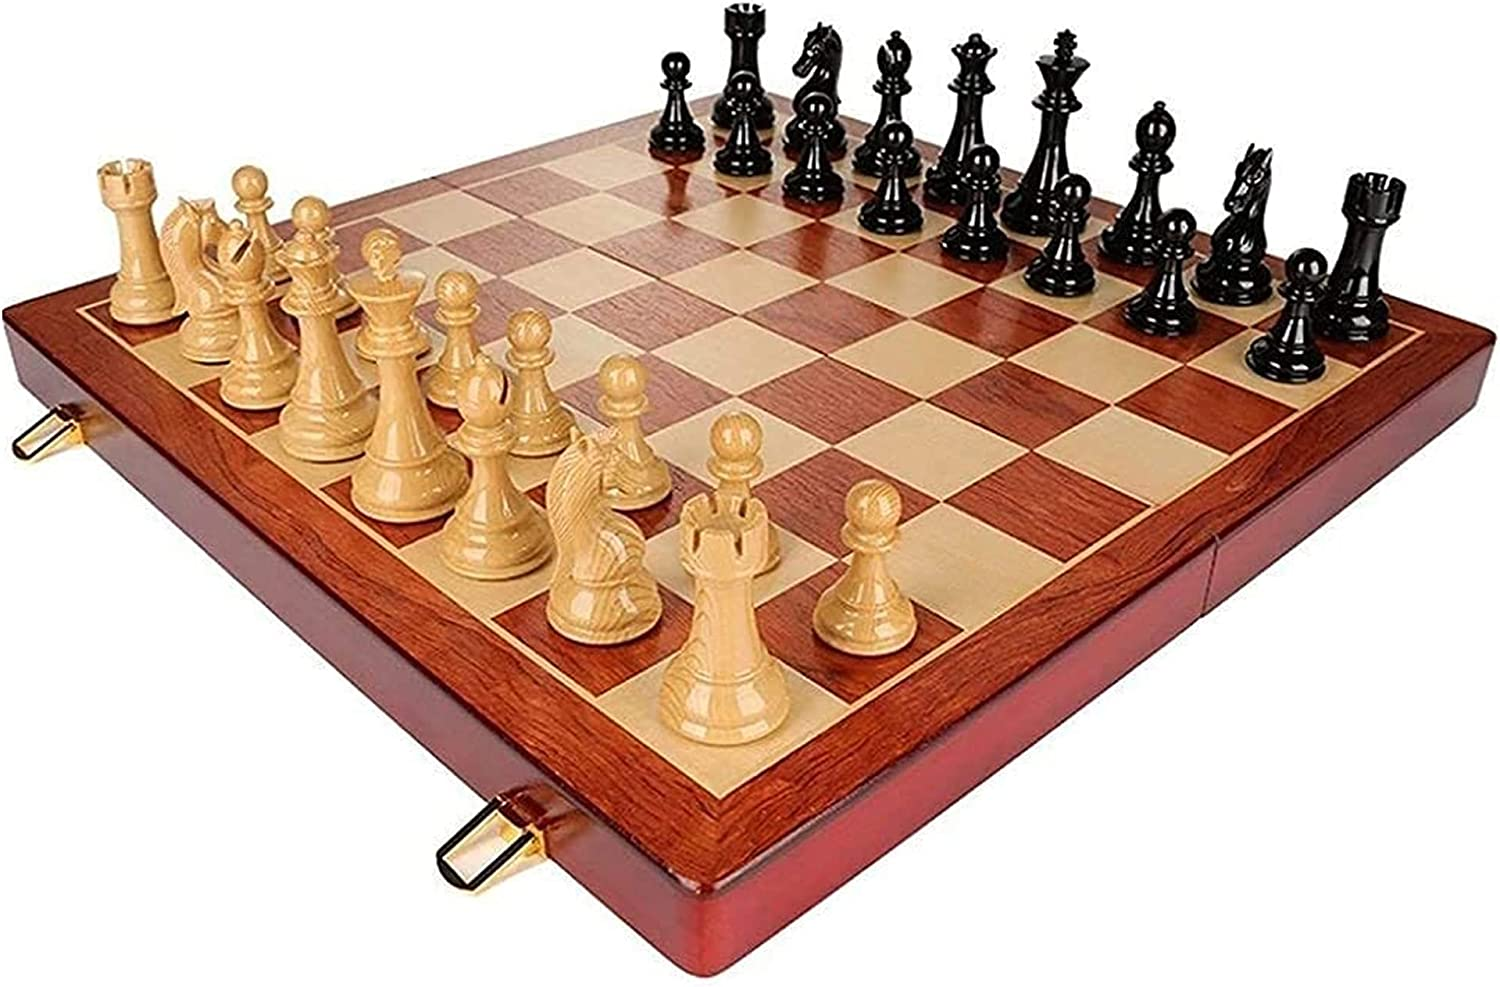 MTCWD Chess Set Games Travel Kids Board Free shipping store New Adults Europea